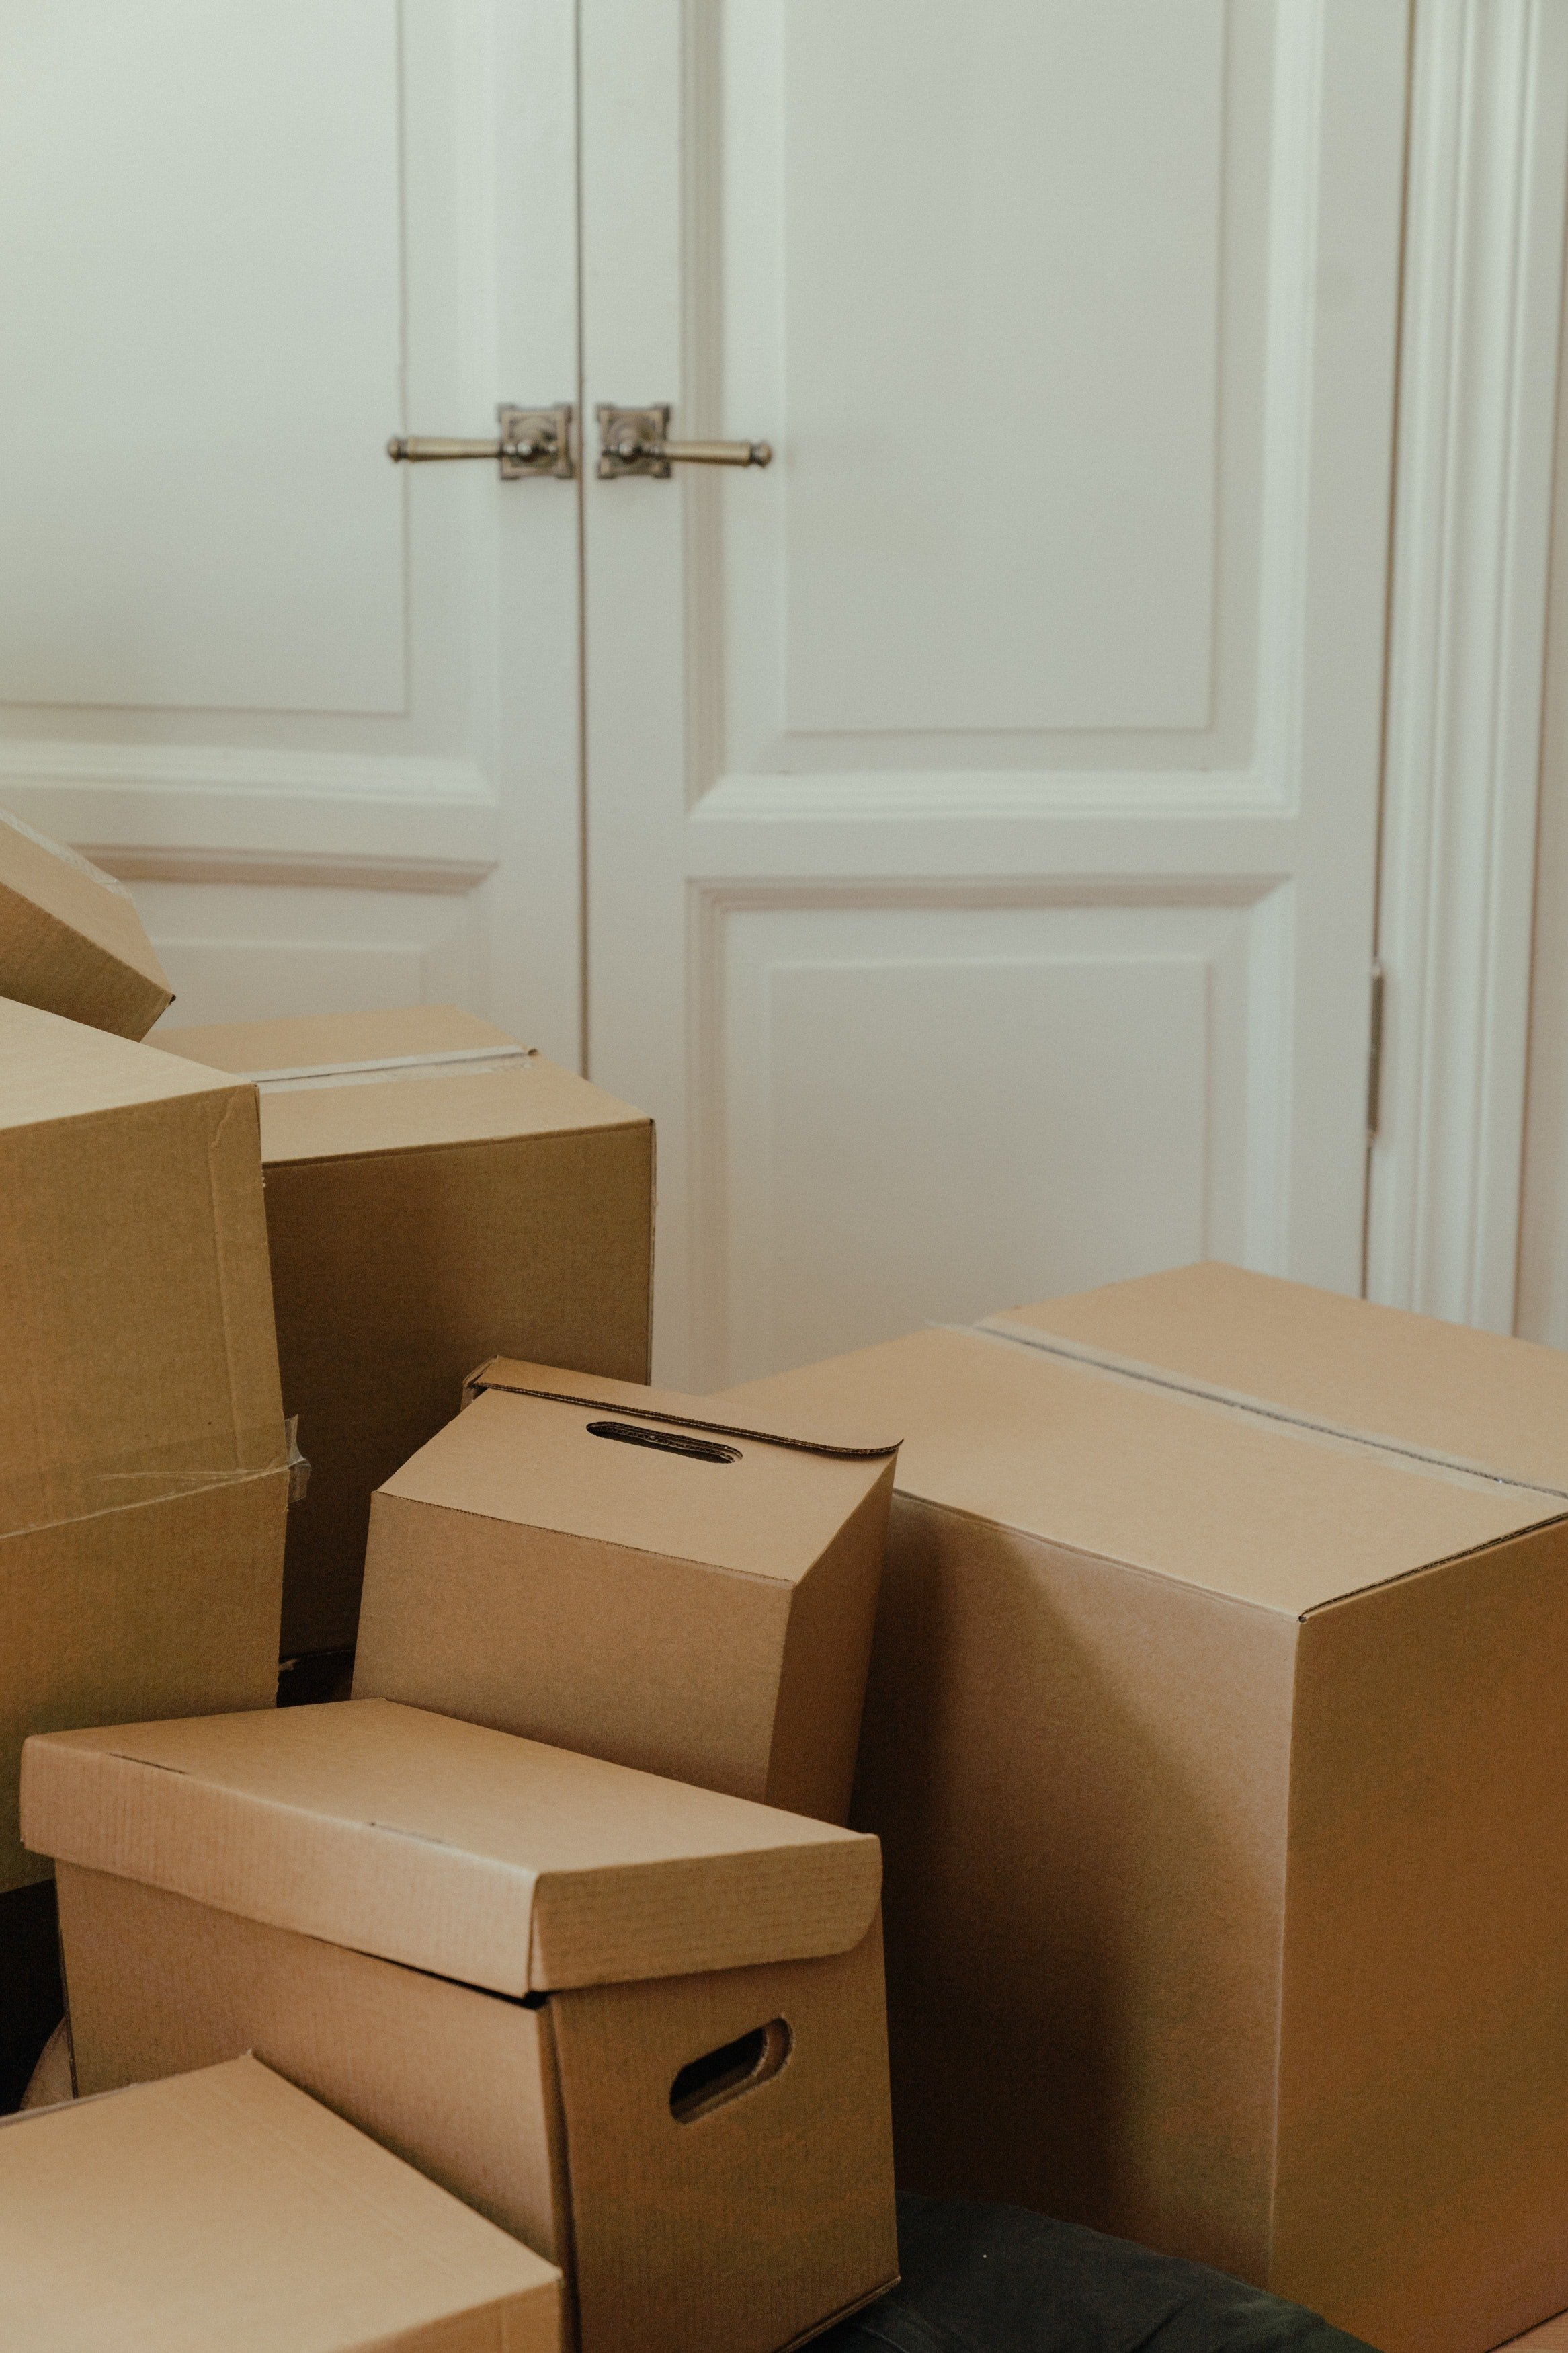 Empty boxes in a room. | Photo: Pexels